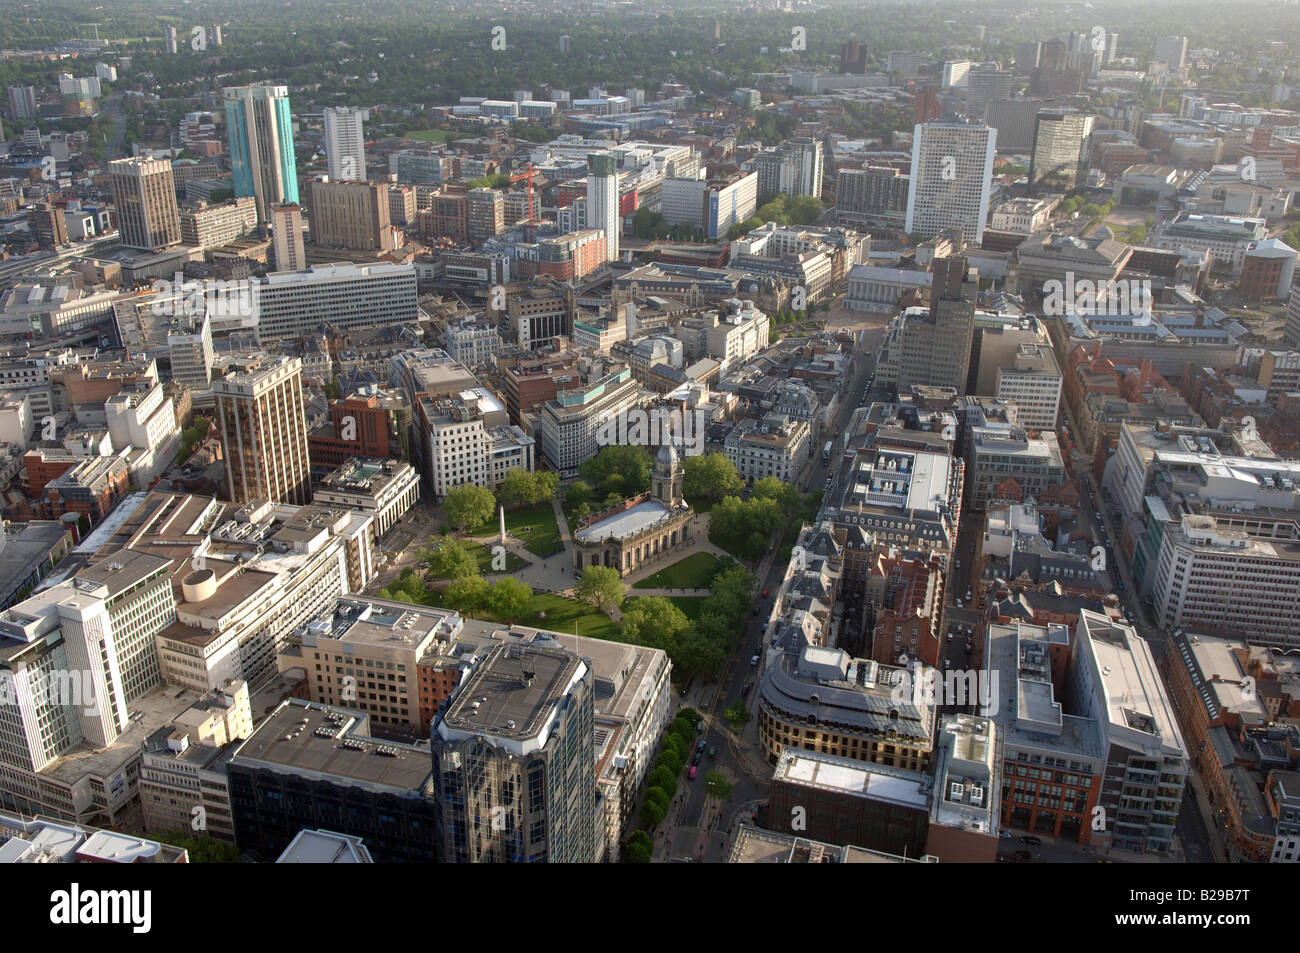 Birmingham and Cathedral Date 12 03 2008 Ref ZB648 111149 0001 COMPULSORY CREDIT World Pictures Photoshot - Stock Image